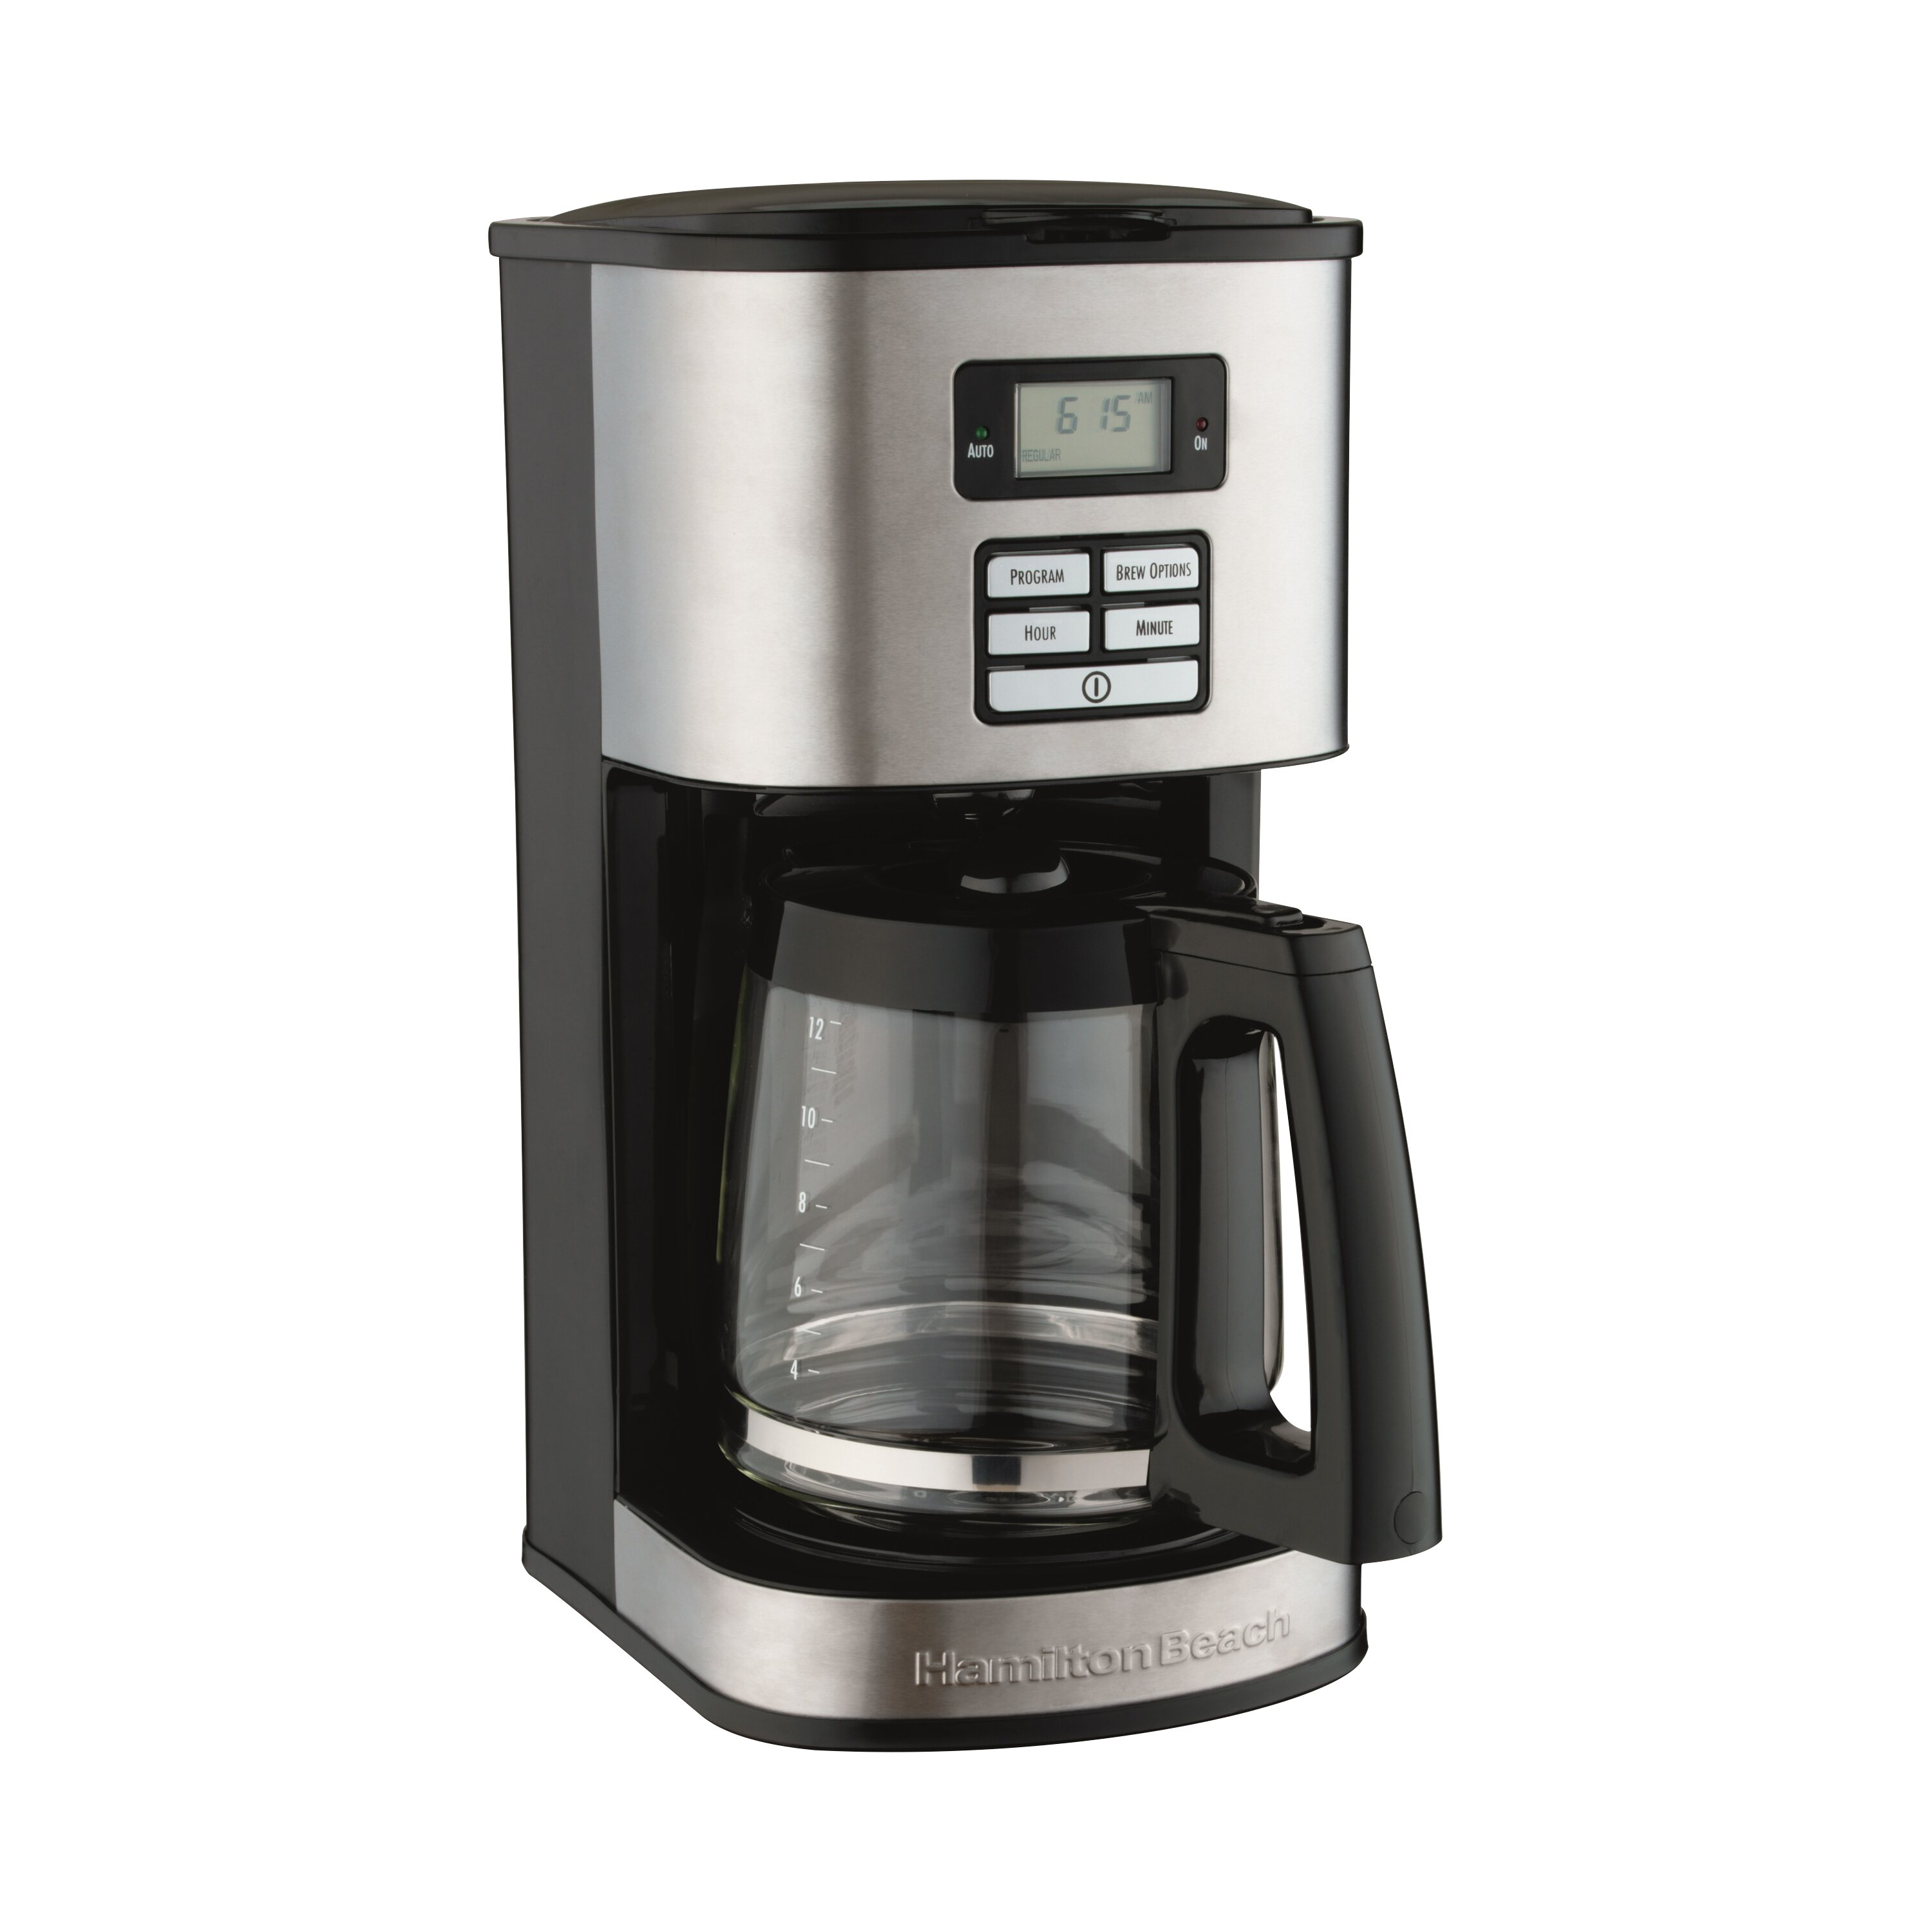 hamilton beach 12 cup stainless steel coffee maker reviews wayfair. Black Bedroom Furniture Sets. Home Design Ideas